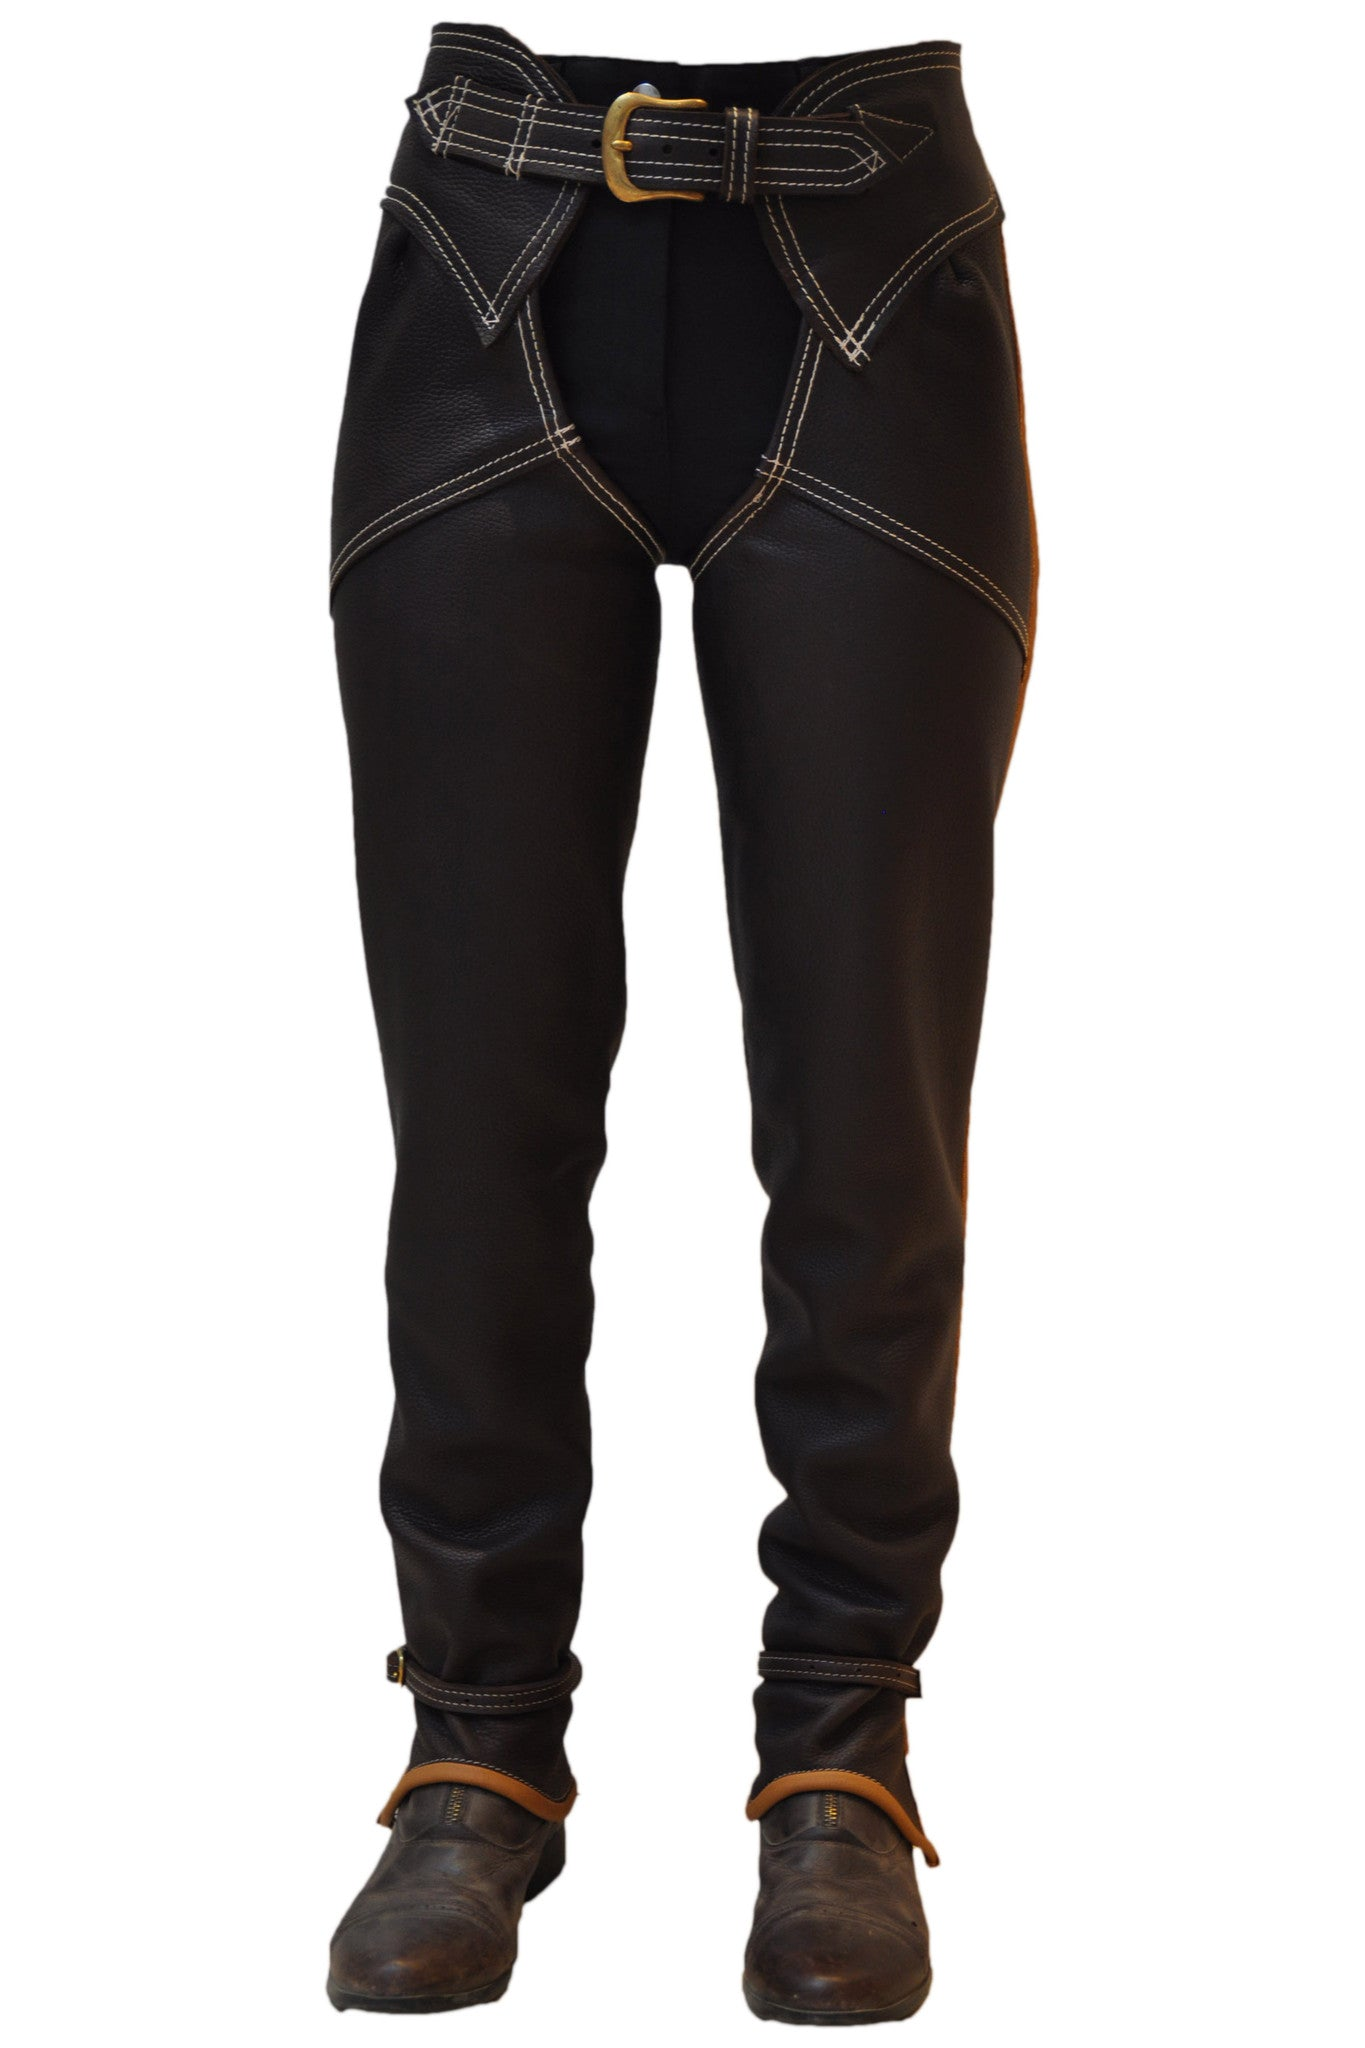 Chaps - Original Full Length Leather Chaps - Long Leg